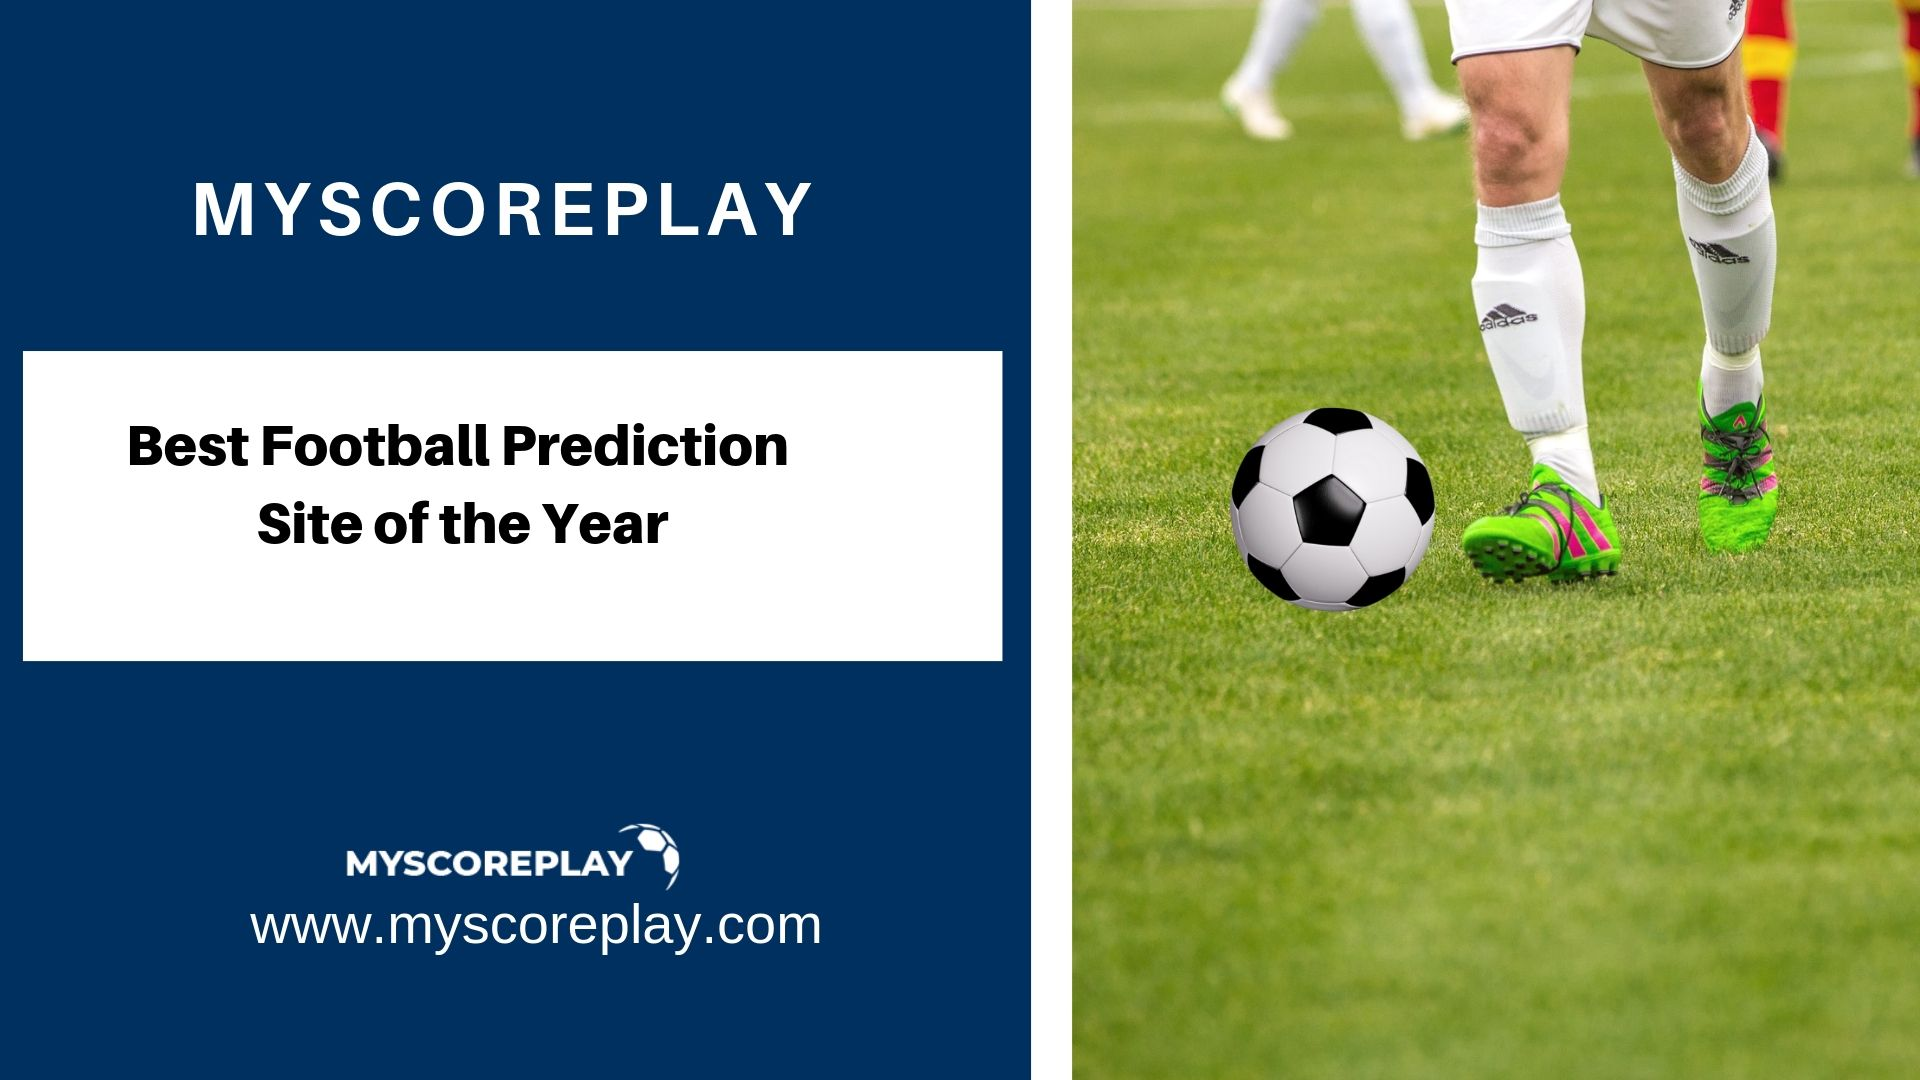 Myscoreplay is the best football Prediction Site of the Year